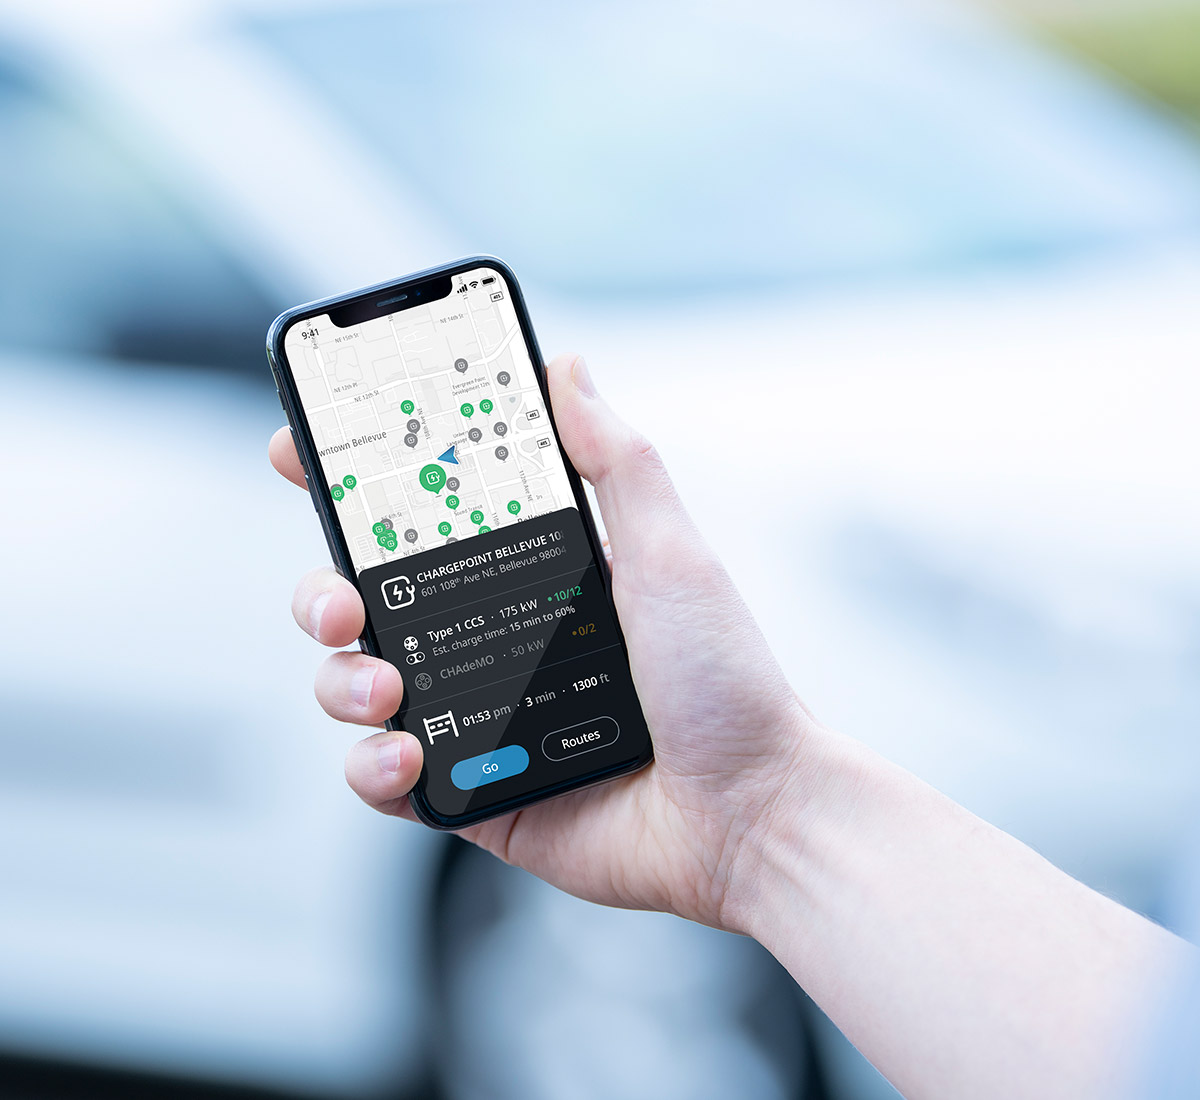 The TomTom EV Service comes fully integrated with TomTom Navigation for Automotive